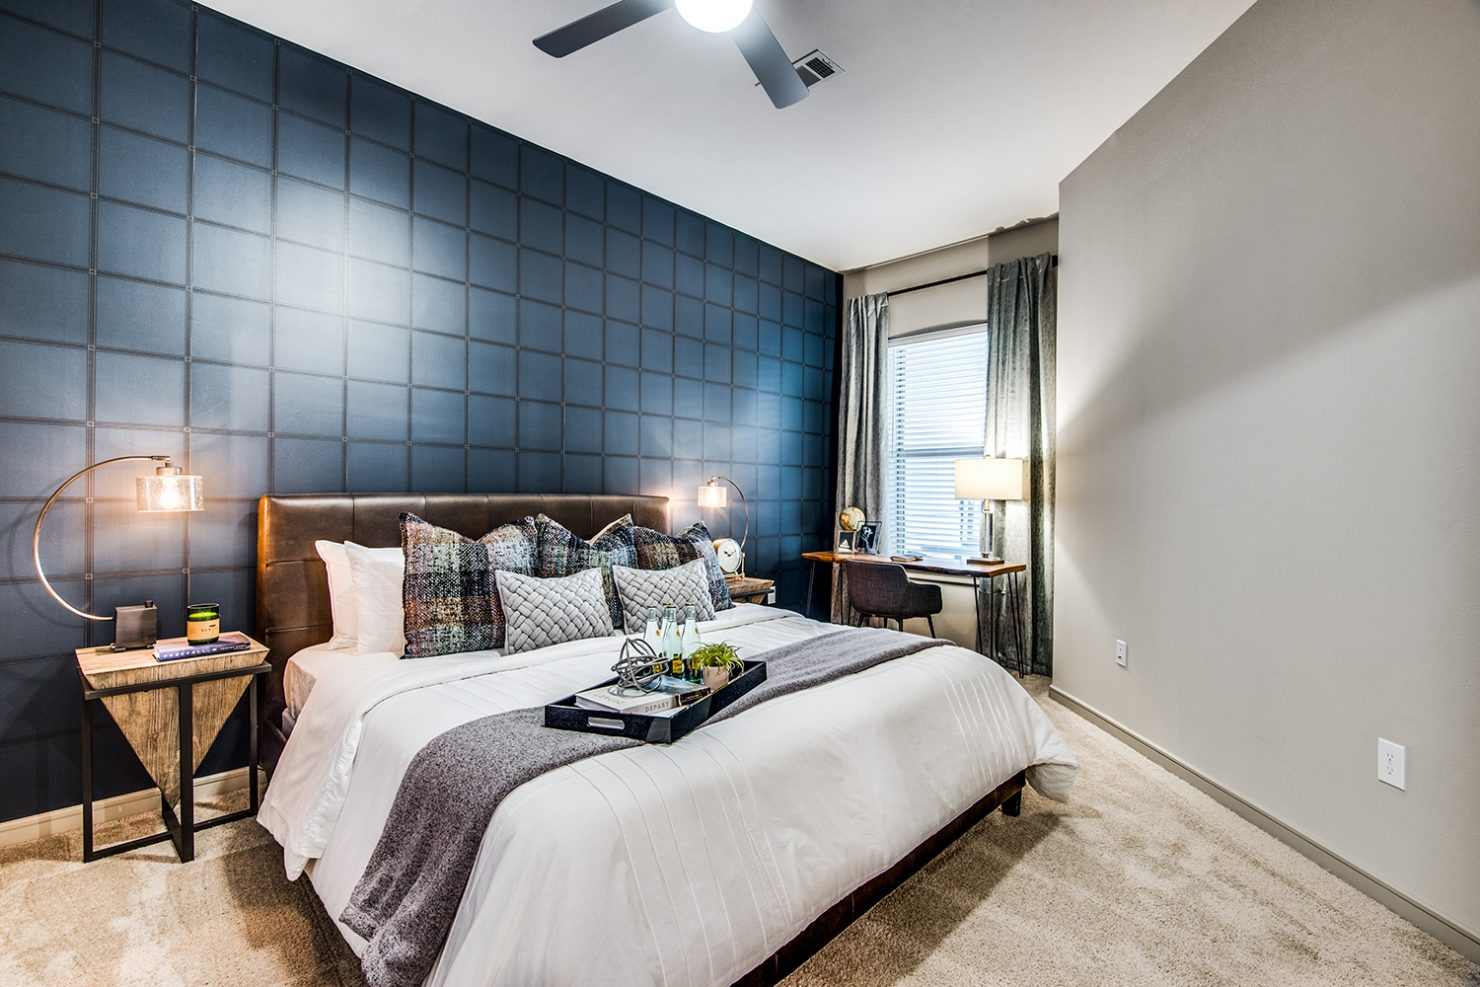 Model apartment bedroom with queen bed, work desk, ceiling fan, and carpeted floor